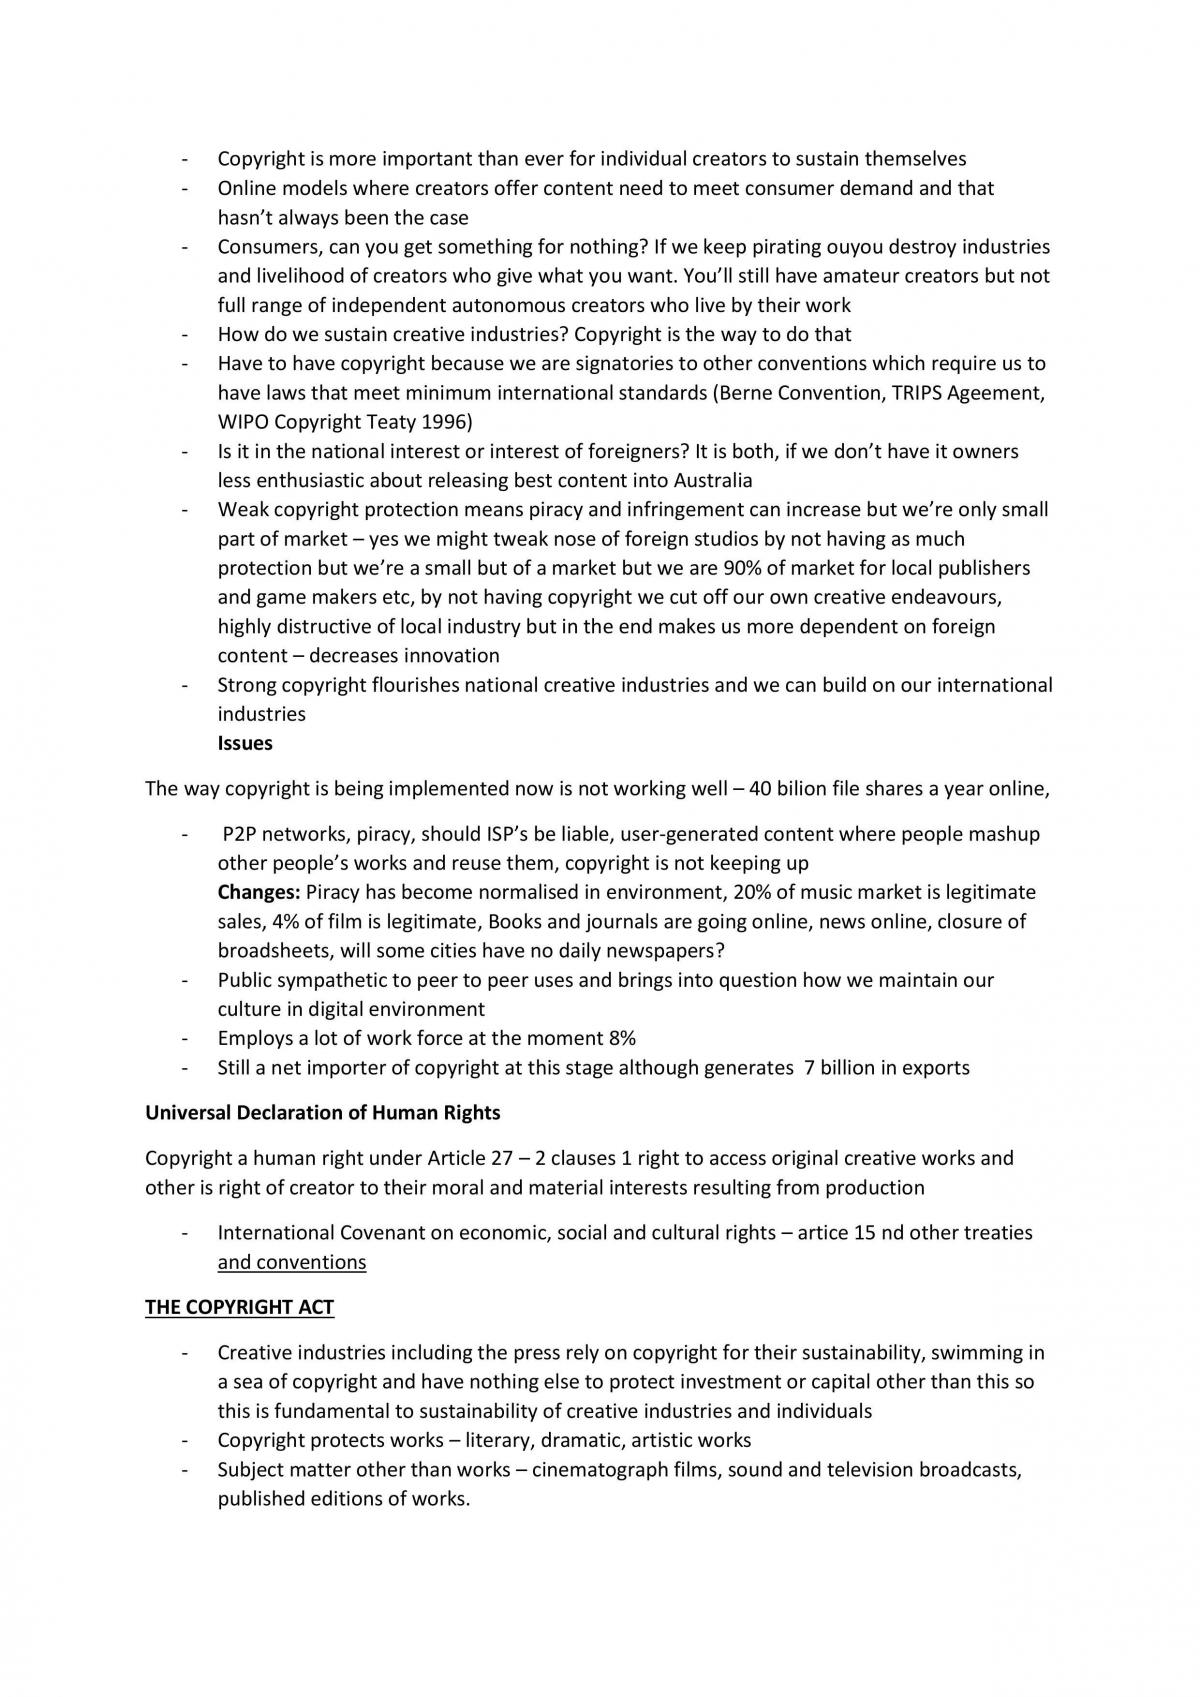 Notes for the Media Law Exam - Page 12